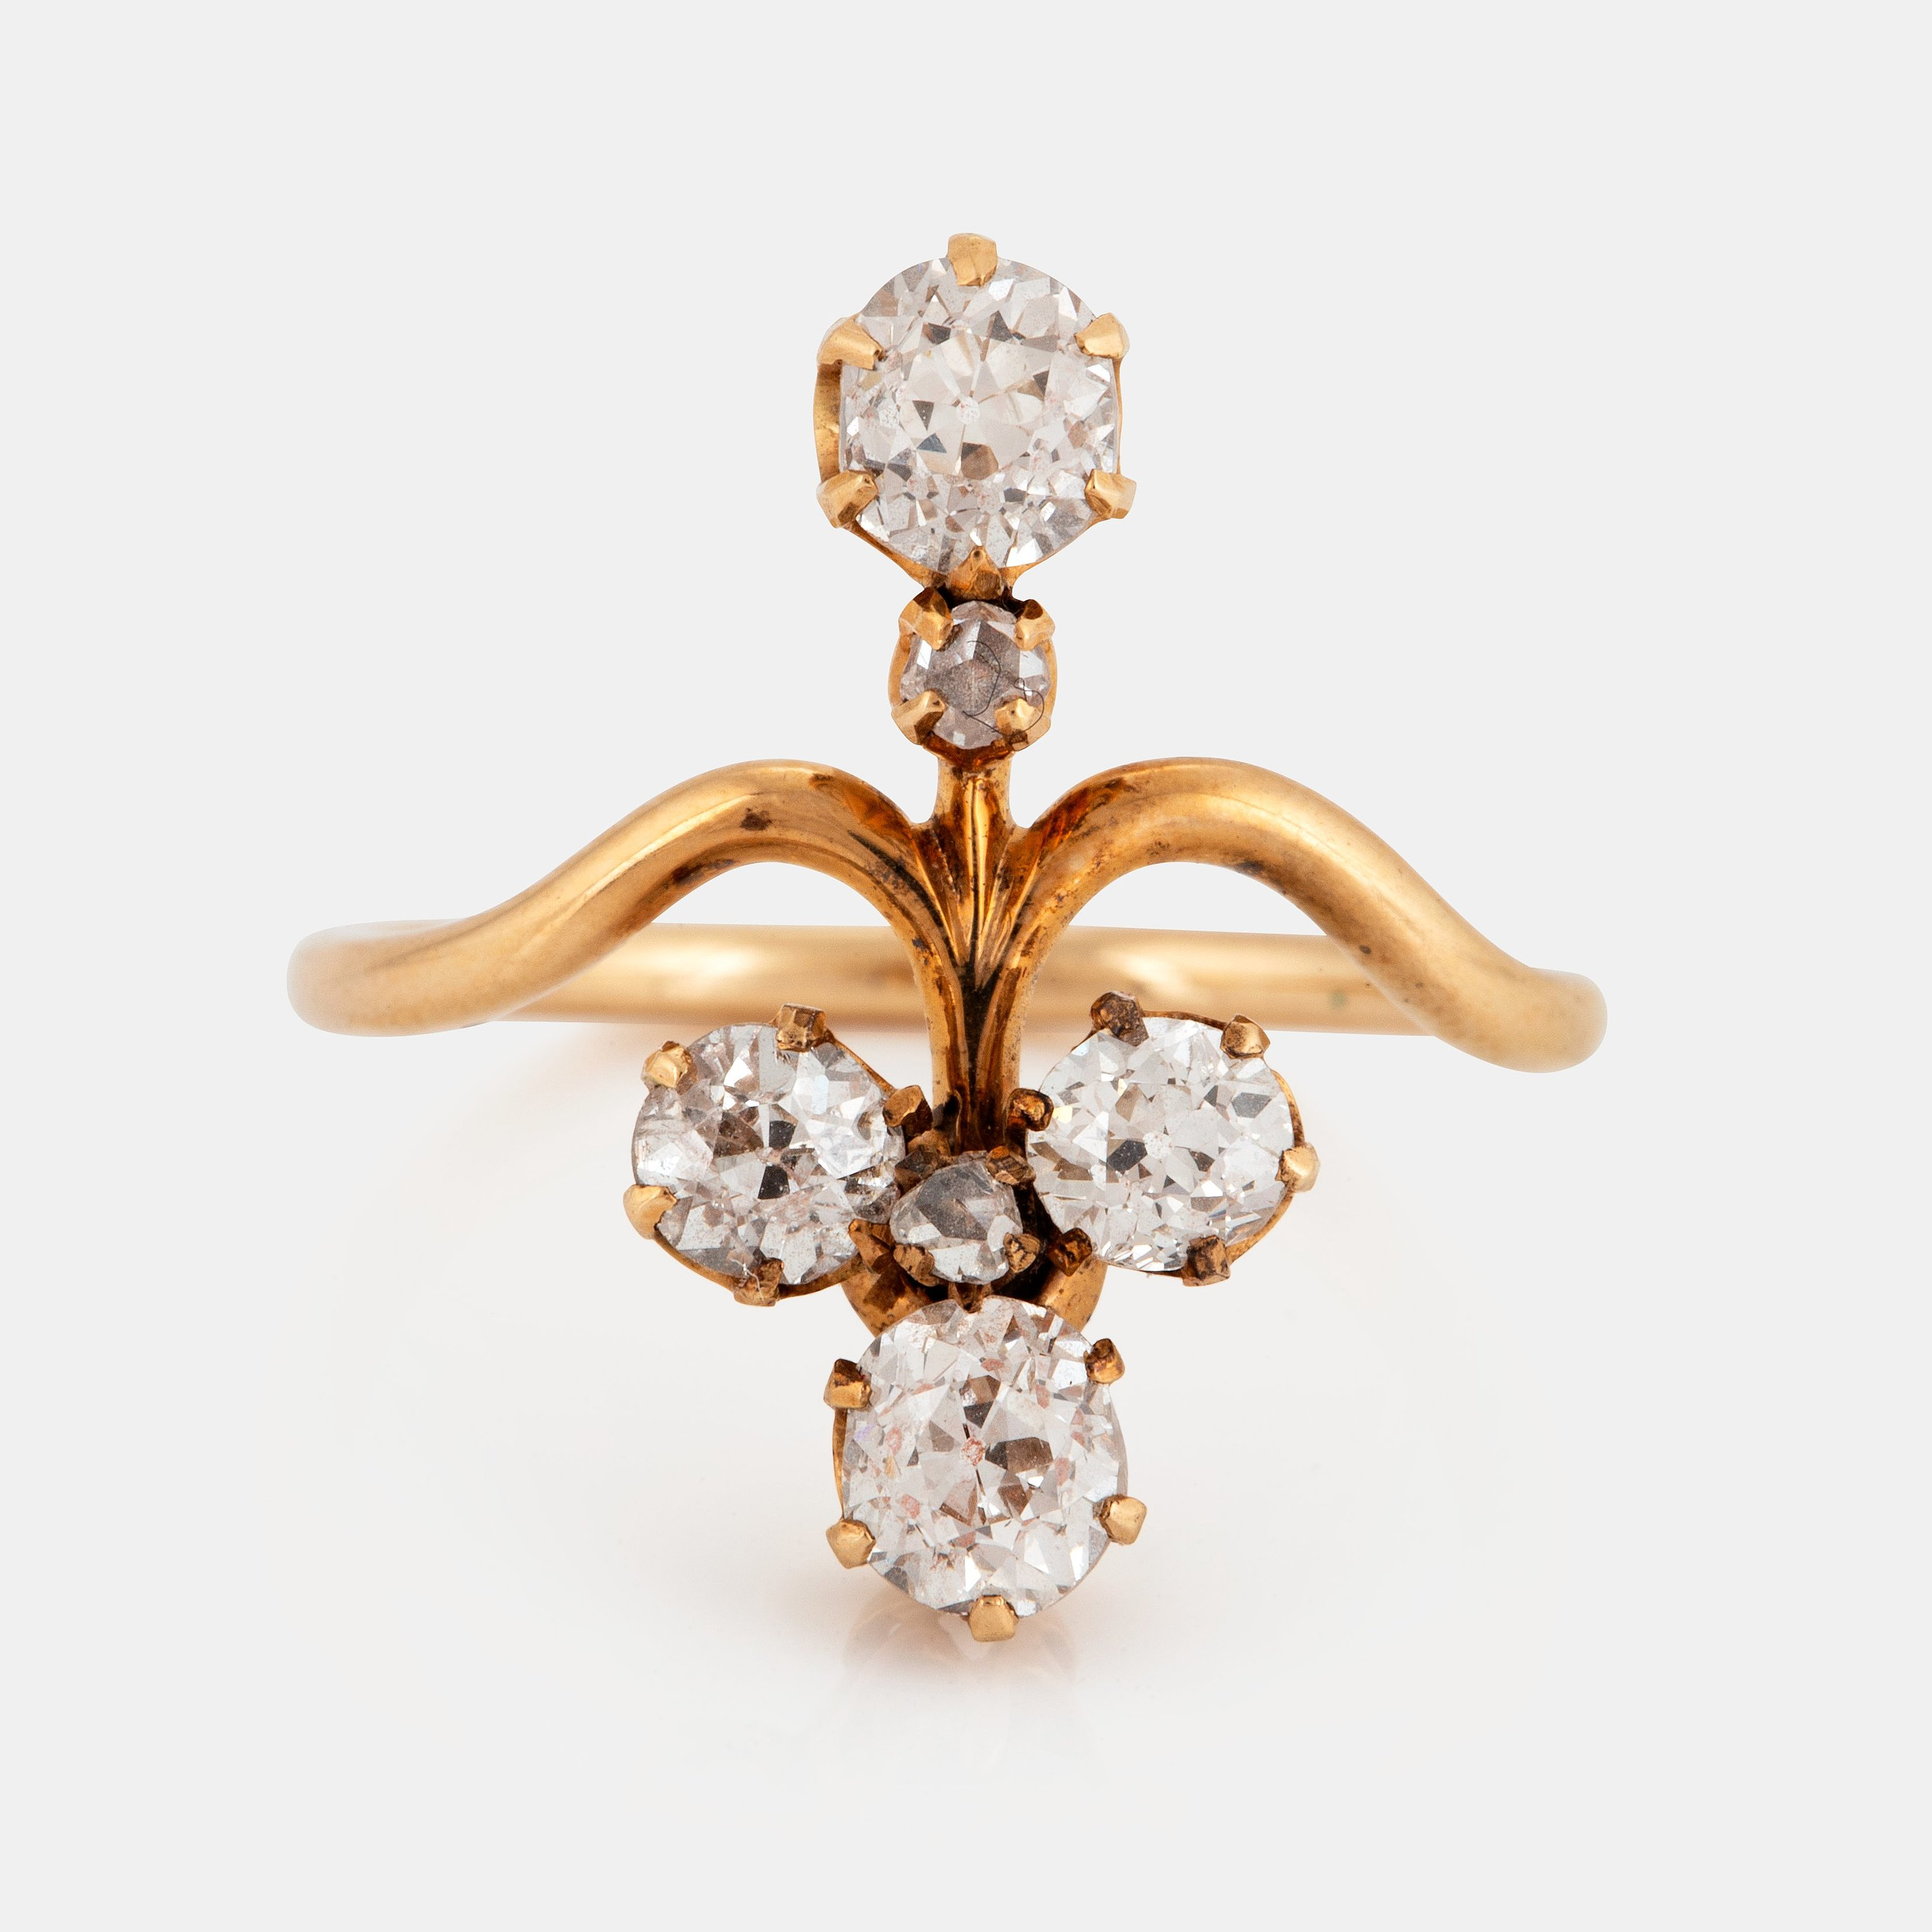 A 14K gold ring set with old- and rose-cut diamonds with a total